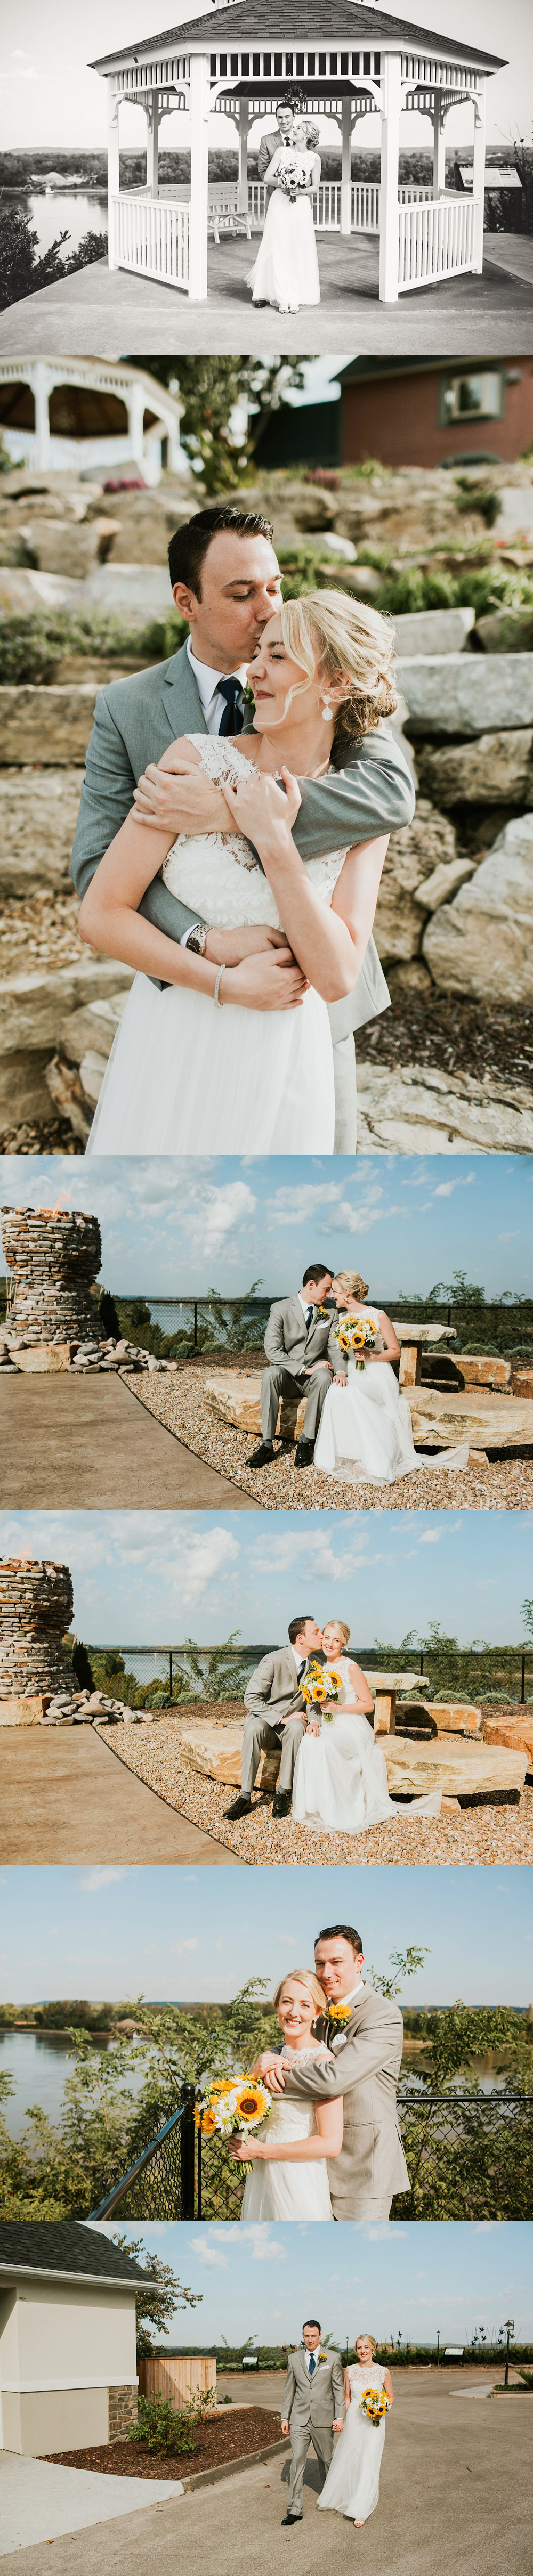 Saint Louis Missouri Wedding Photographer